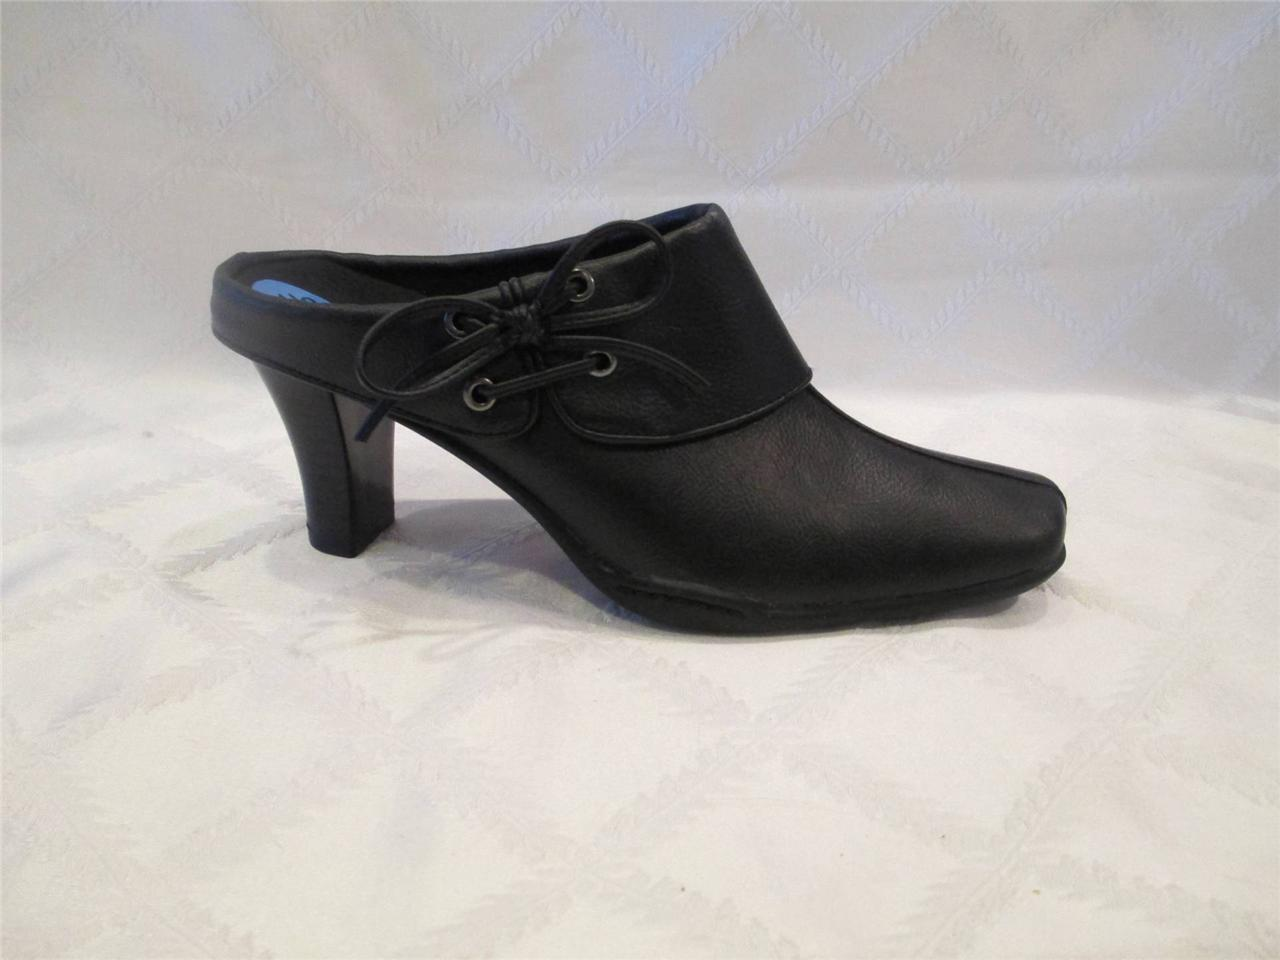 Black Womens Slip-on Shoes Sale: Save Up to 75% Off! Shop lemkecollier.ga's huge selection of Black Slip-on Shoes for Women - Over 1, styles available. .